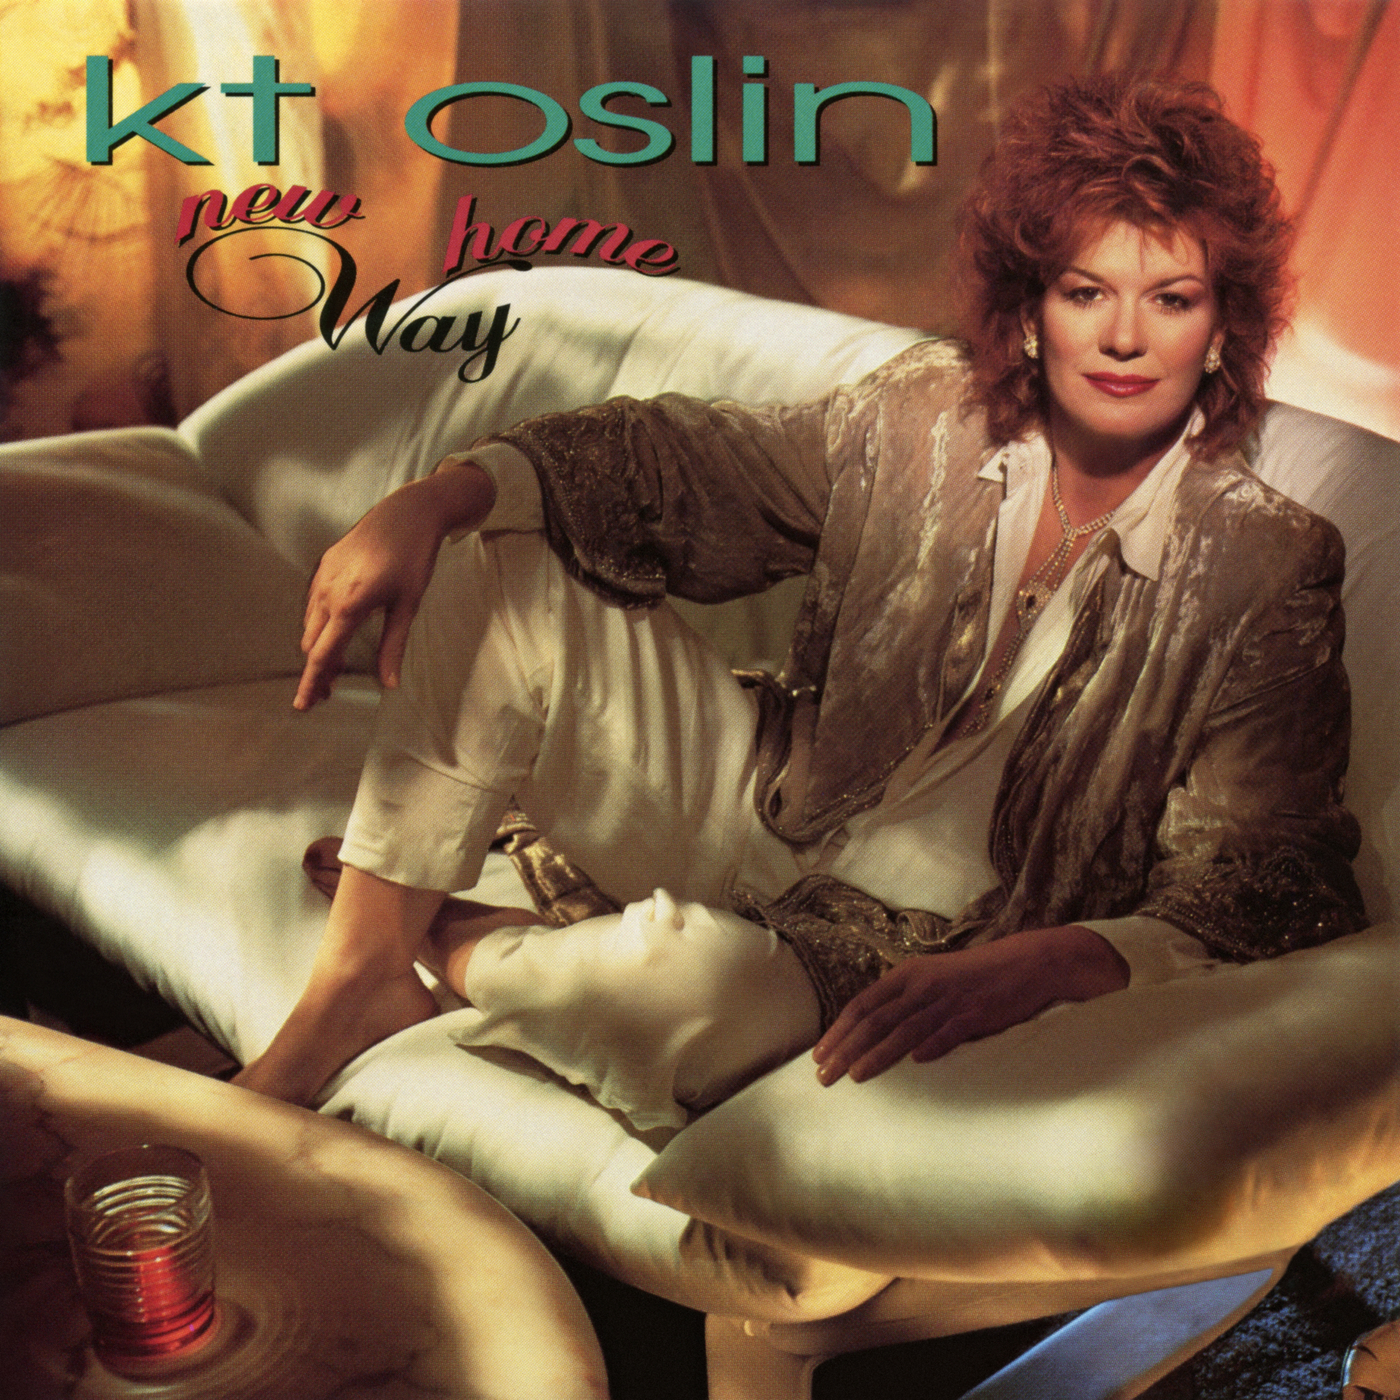 New Way Home - K.T. Oslin